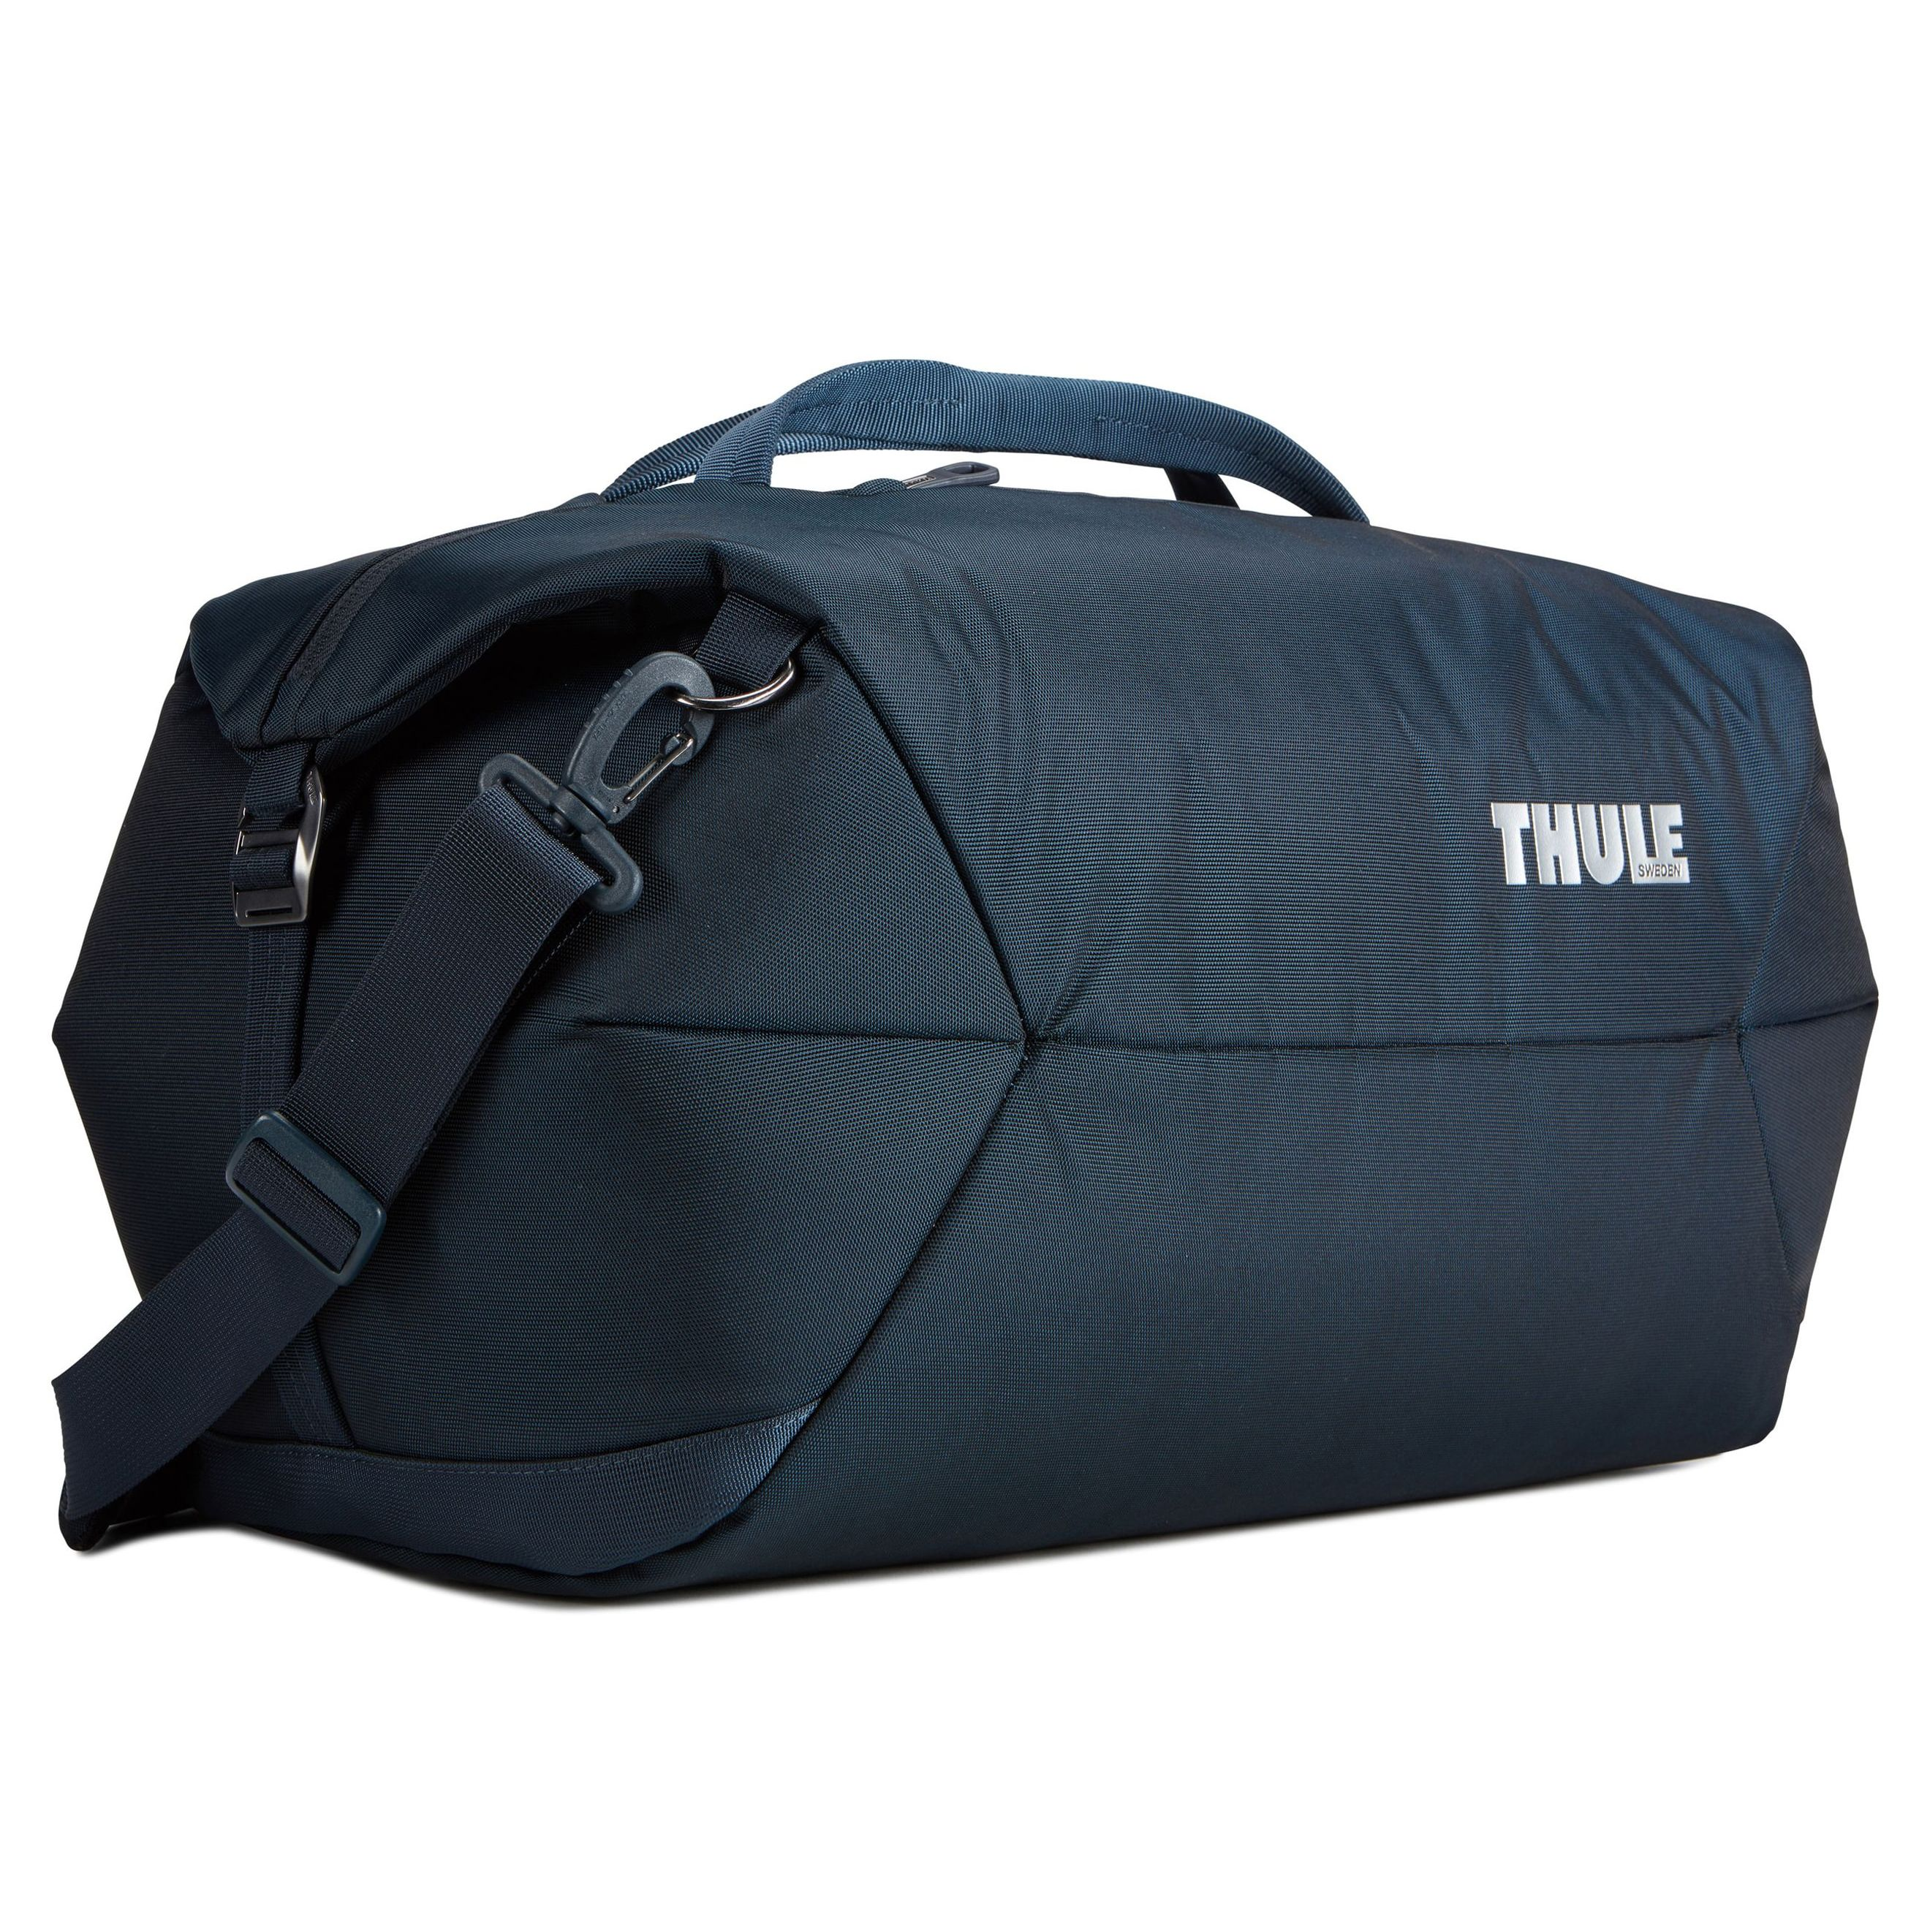 6db7ca8d9523 10 Best Gym Bags for Women in 2018 - Cute Gym Bags